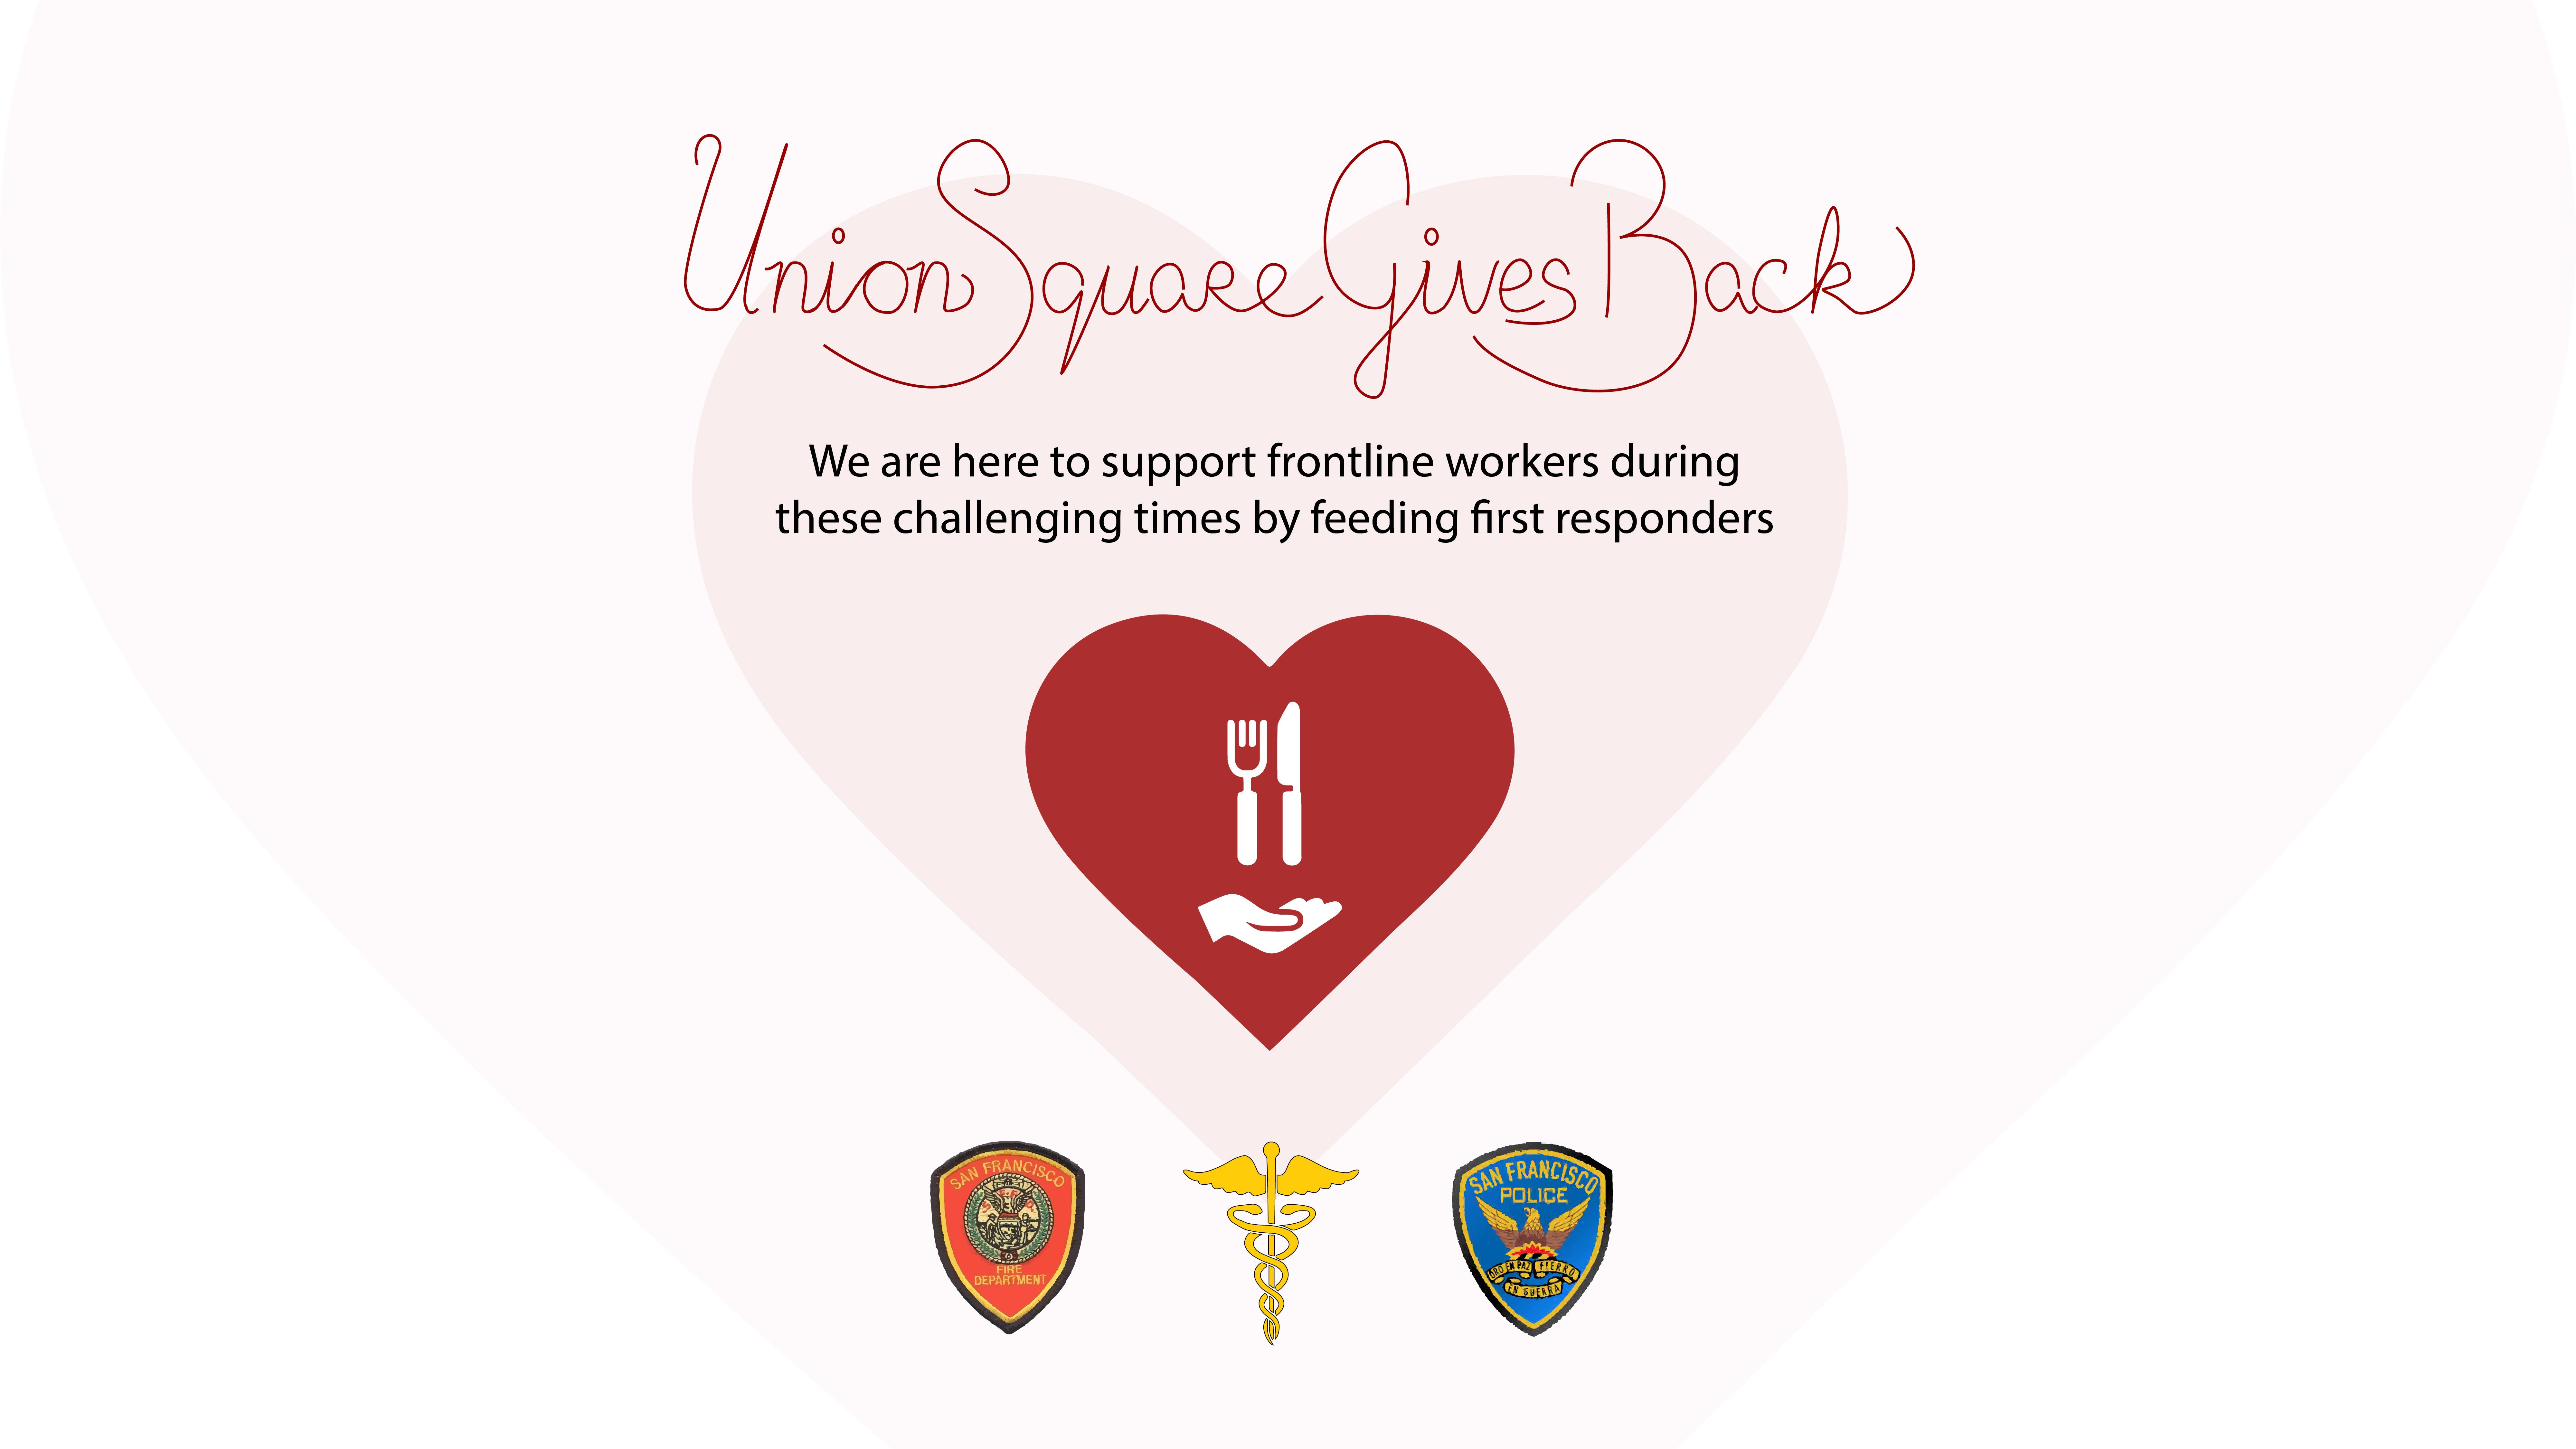 Union Square Gives Back